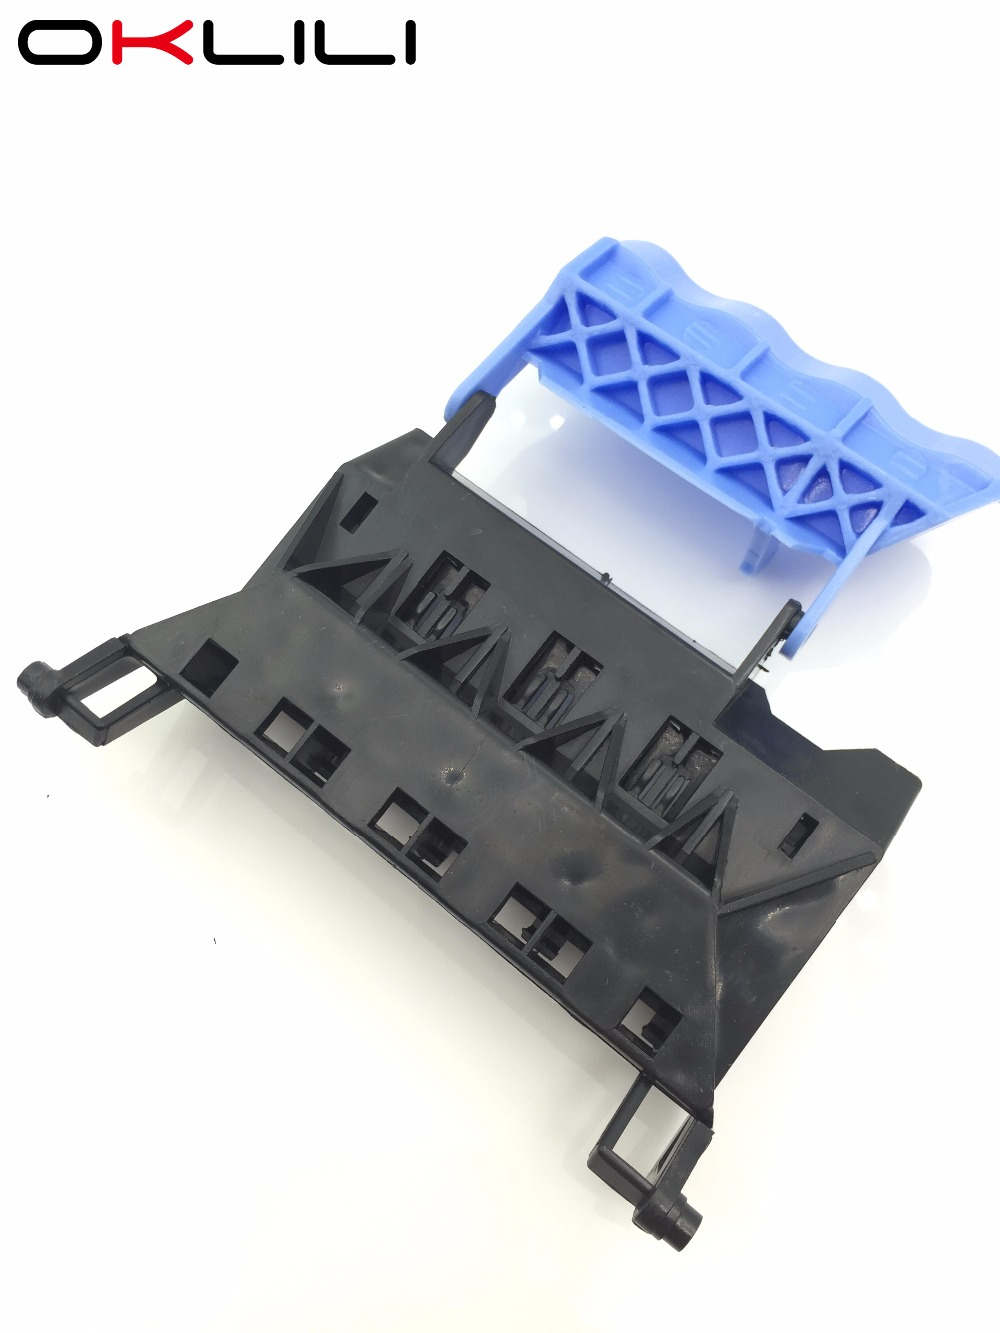 C7769-69376 Print Head Carriage Assembly Carriage Cover for HP DesignJet 500 500ps 510 750c 800 800ps 820MFP 4500 5500 T1100 MFP rosenberg 7769